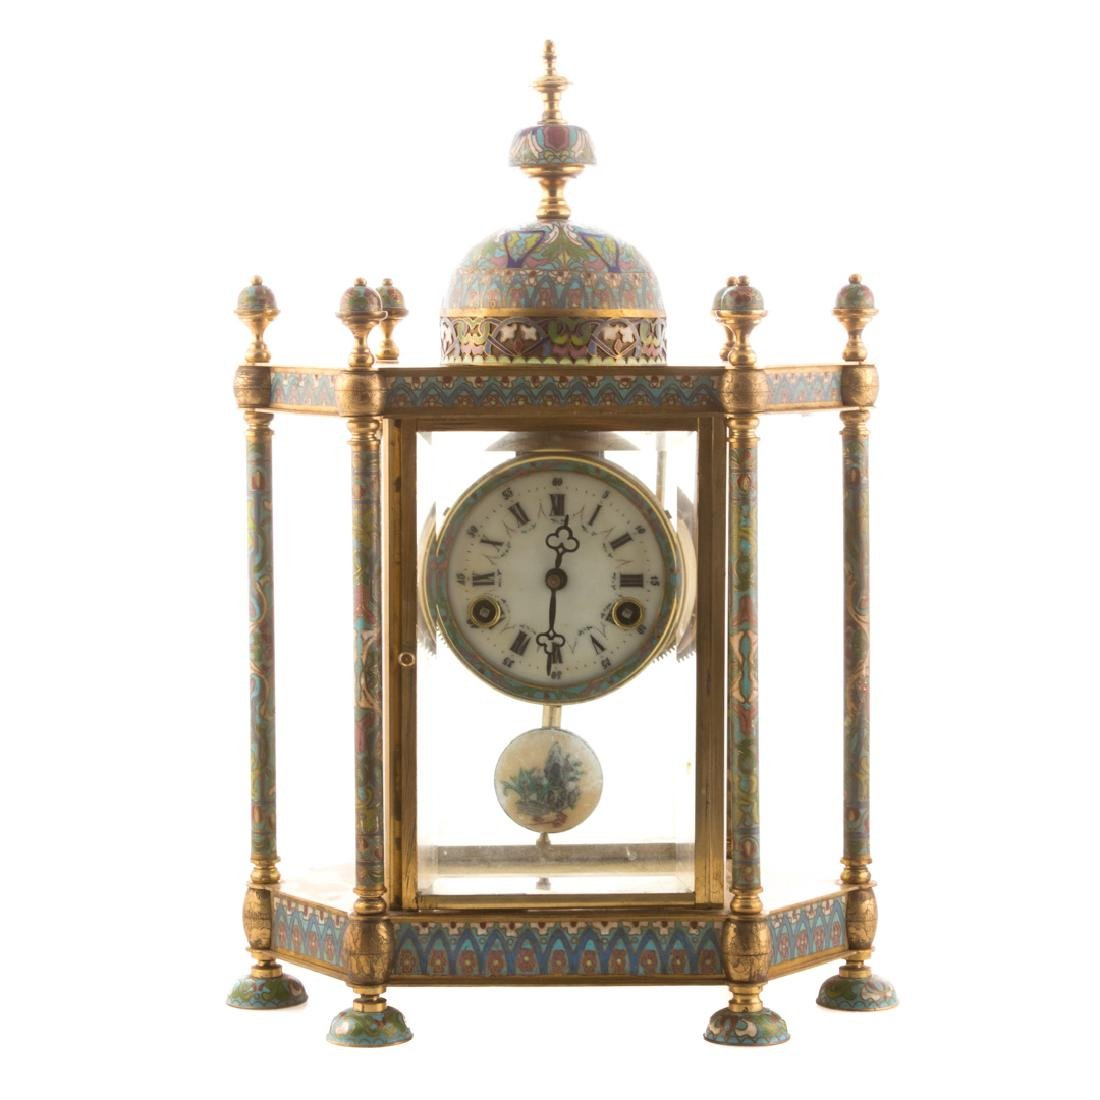 Chinese brass and cloisonne mantel clock